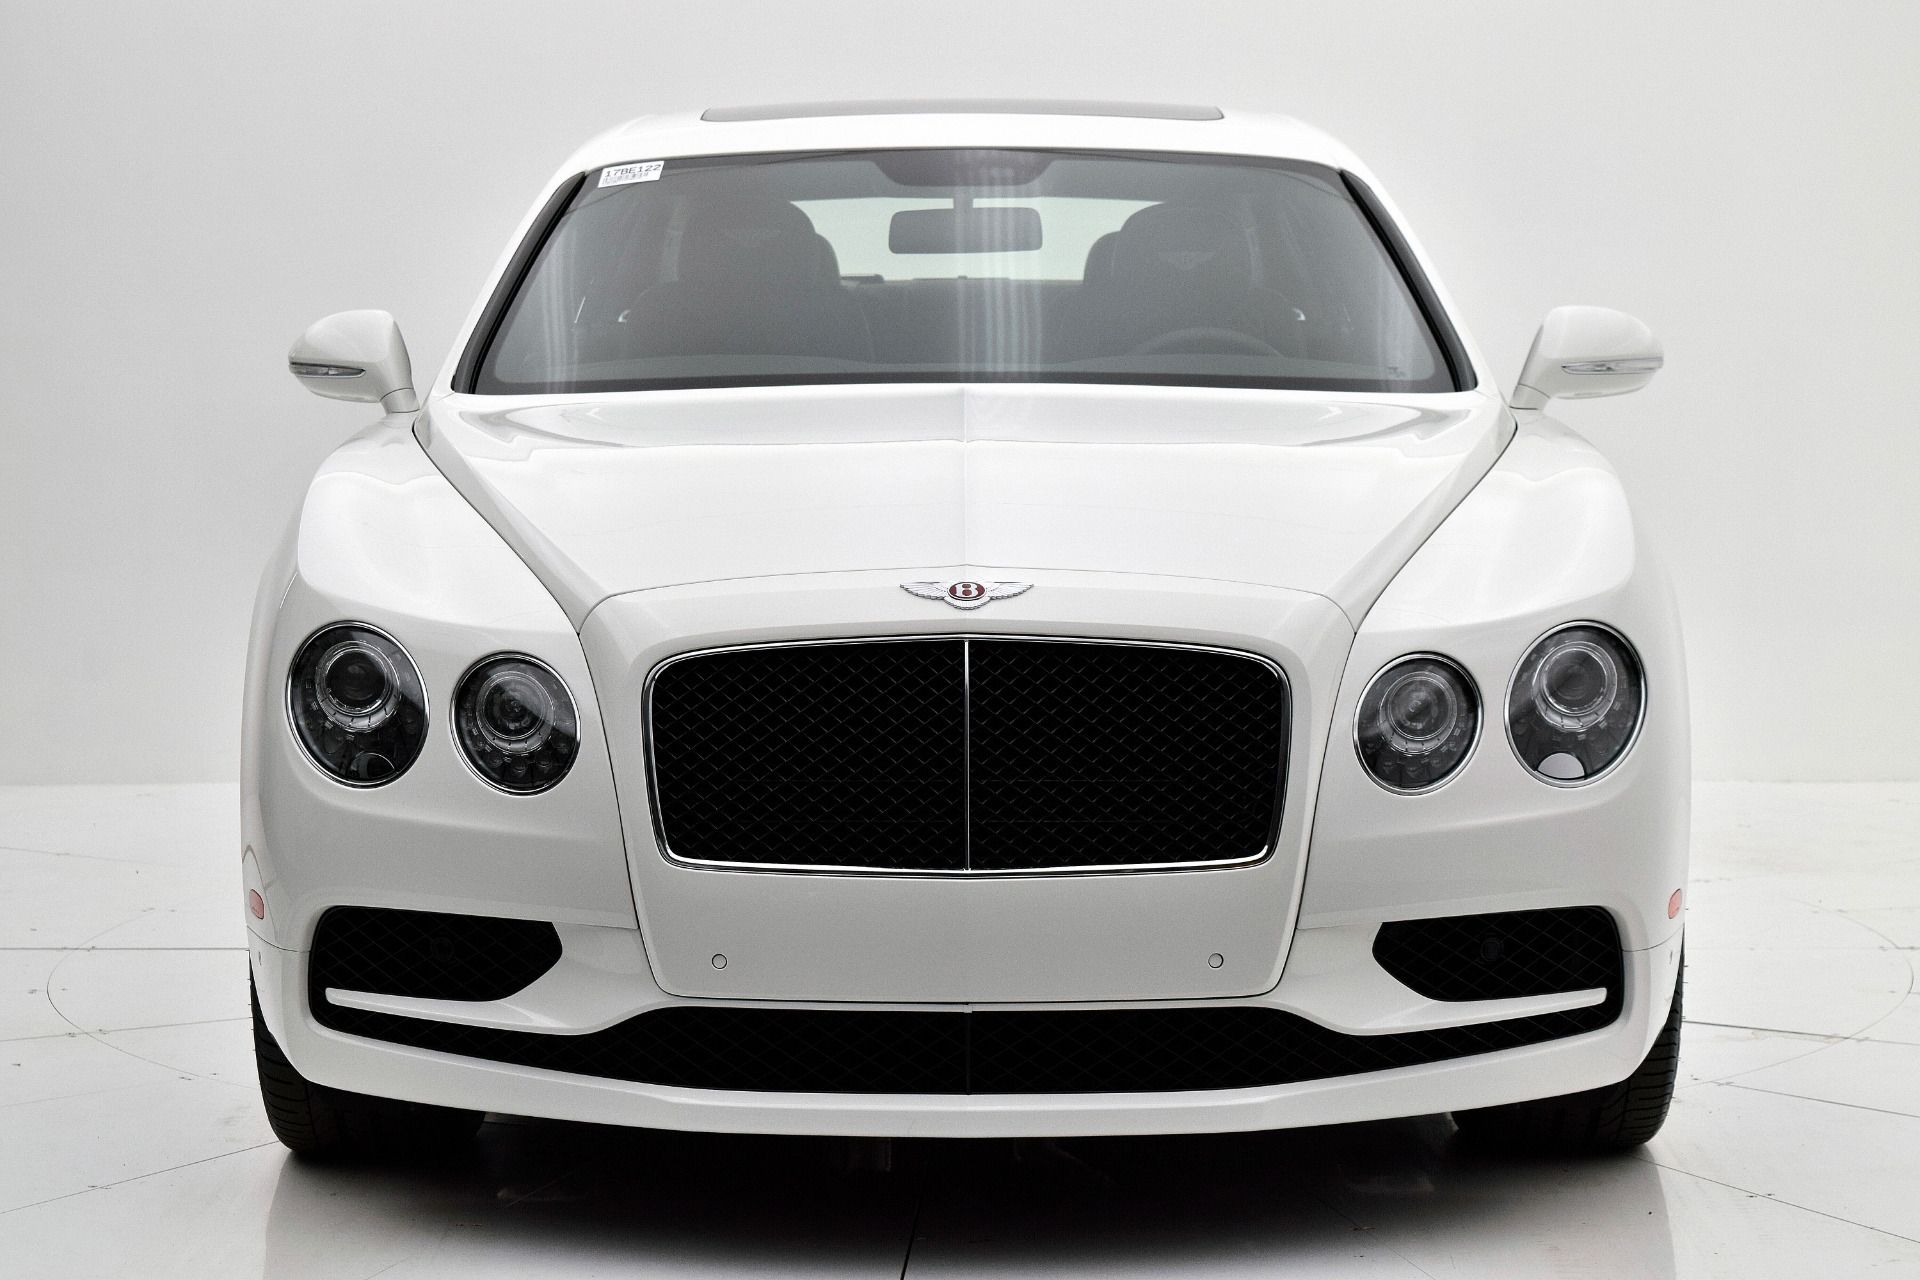 2015 Bentley Flying Spur W12 Cars Pinterest